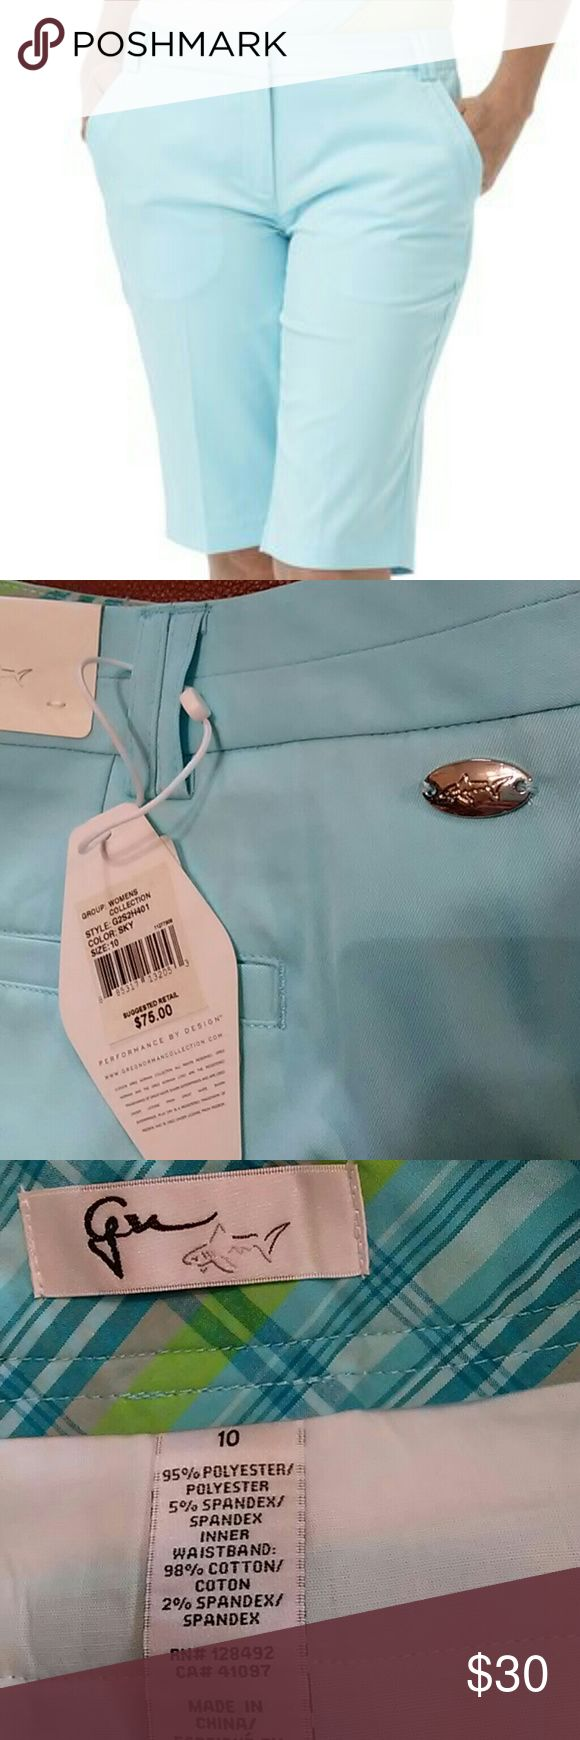 "Greg Norman Bermuda Shorts 10 nwt Fresh/ crisp sky blue in size 10 Poly/spandex blend 13"" inseam Light weight and cool in hot weather Casual, golf, walking, picnics greg norman Shorts Bermudas"